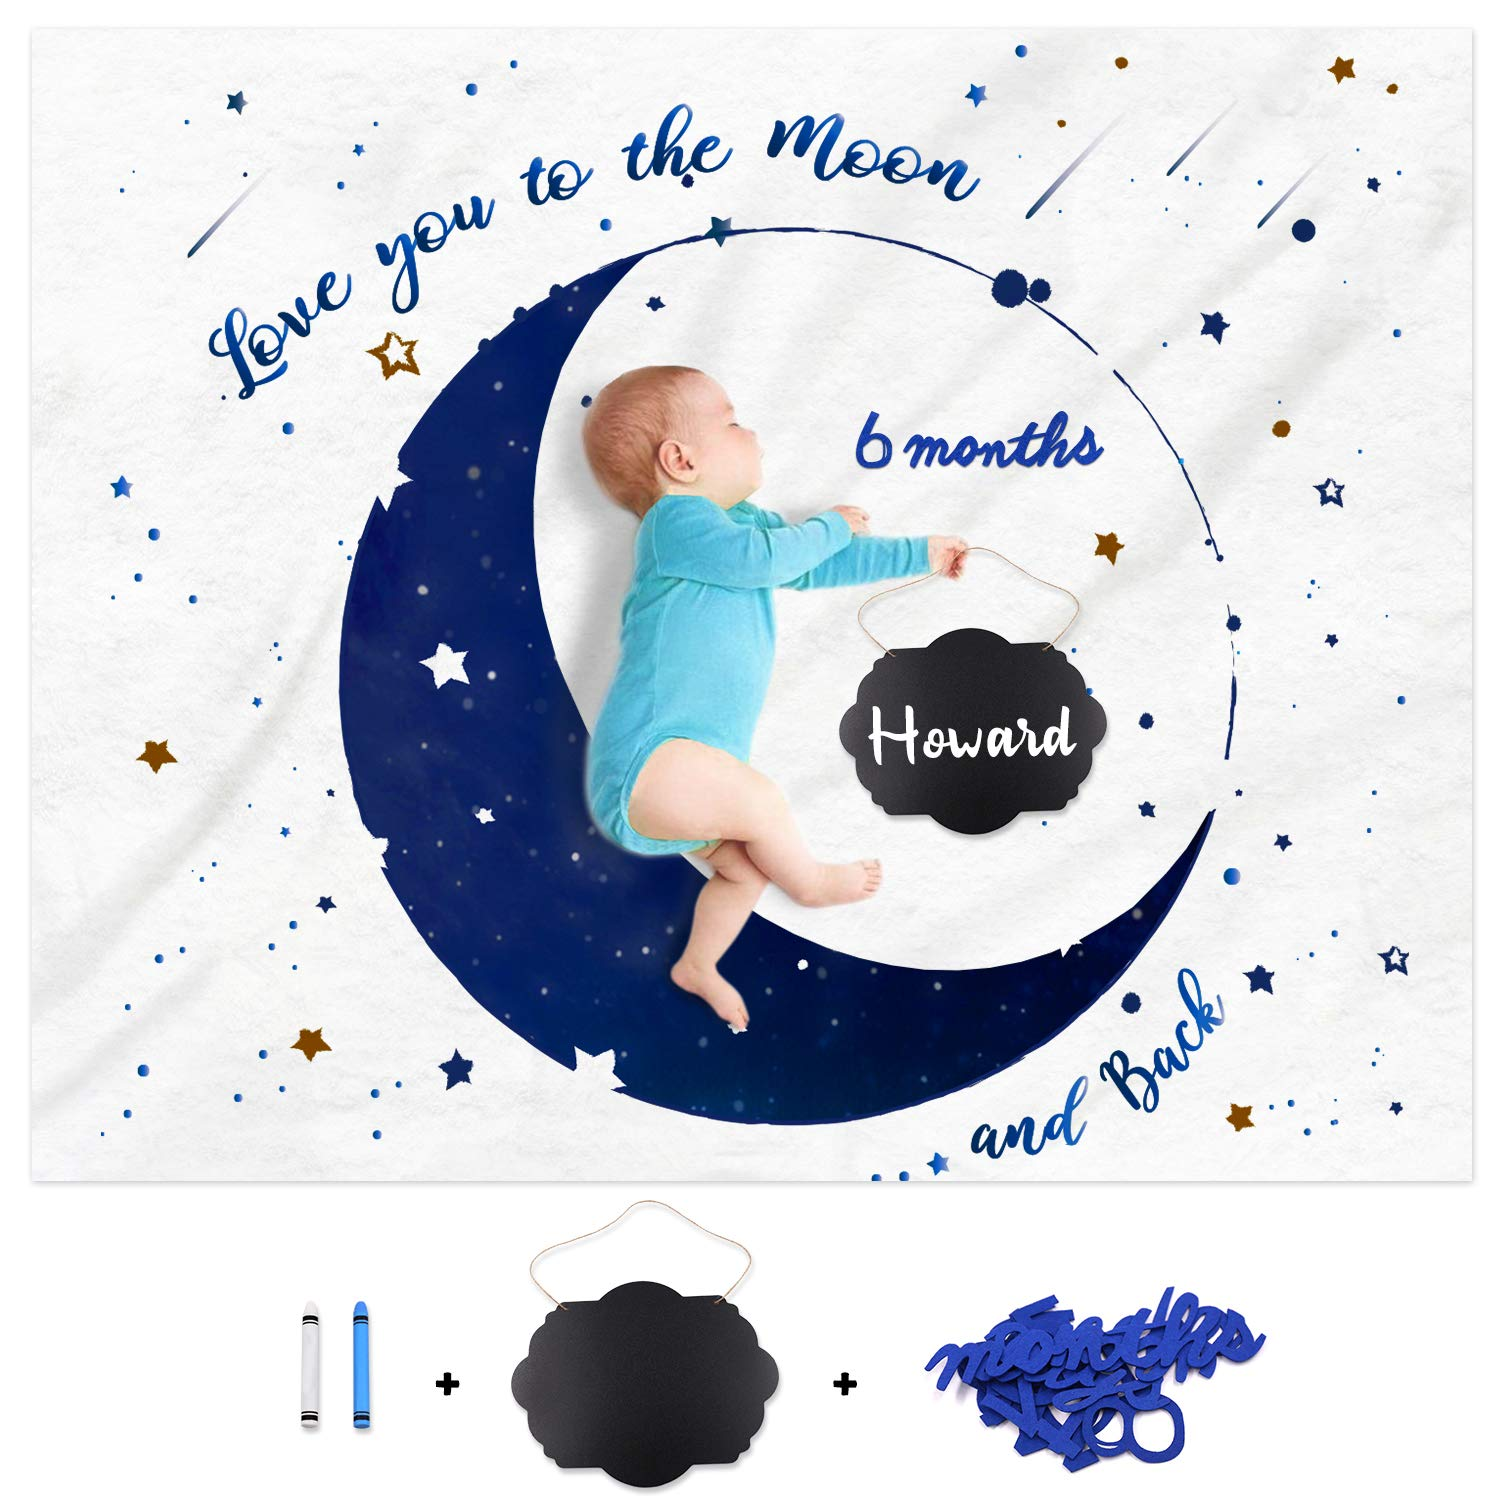 Baby Monthly Milestone Blanket Personalized Moon and Star Photo Props Blanket Ideas for Newborn Boy Blanket Design with Felt Number Set Navy Blue Milestone Chalkboard Baby Nursery Decor 4050